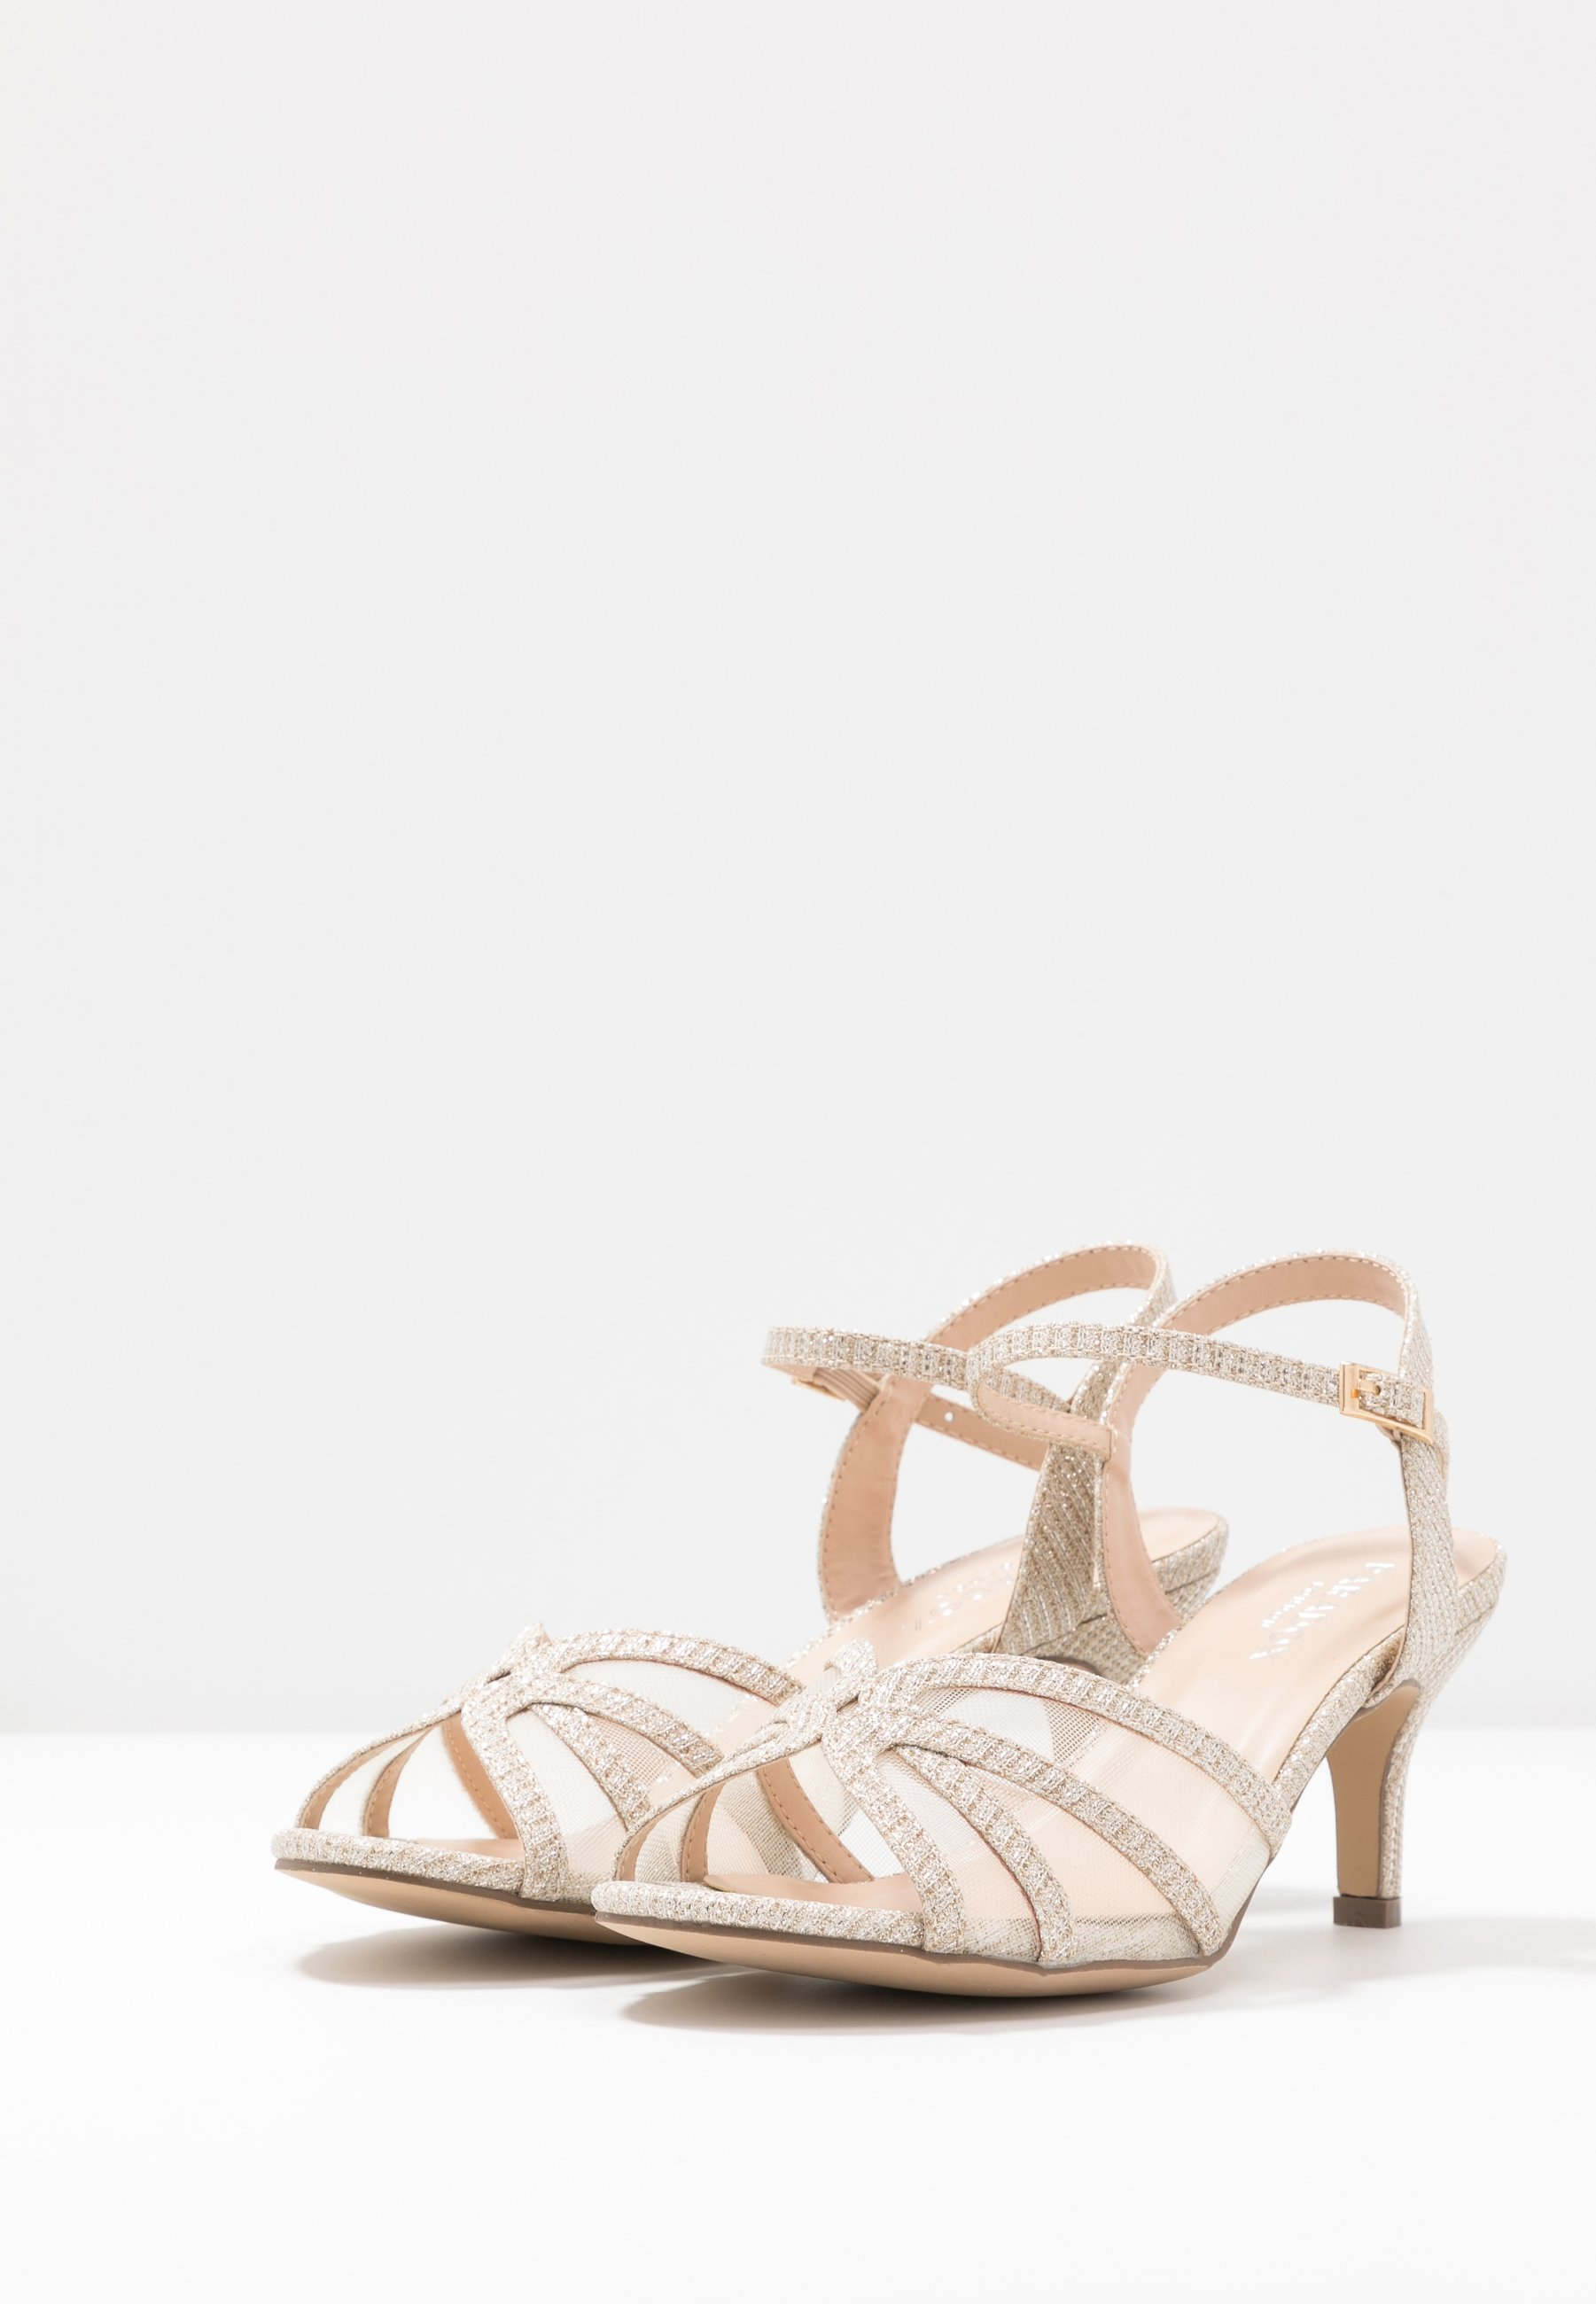 Paradox London Pink Helice - Sandali Champagne nqIrm